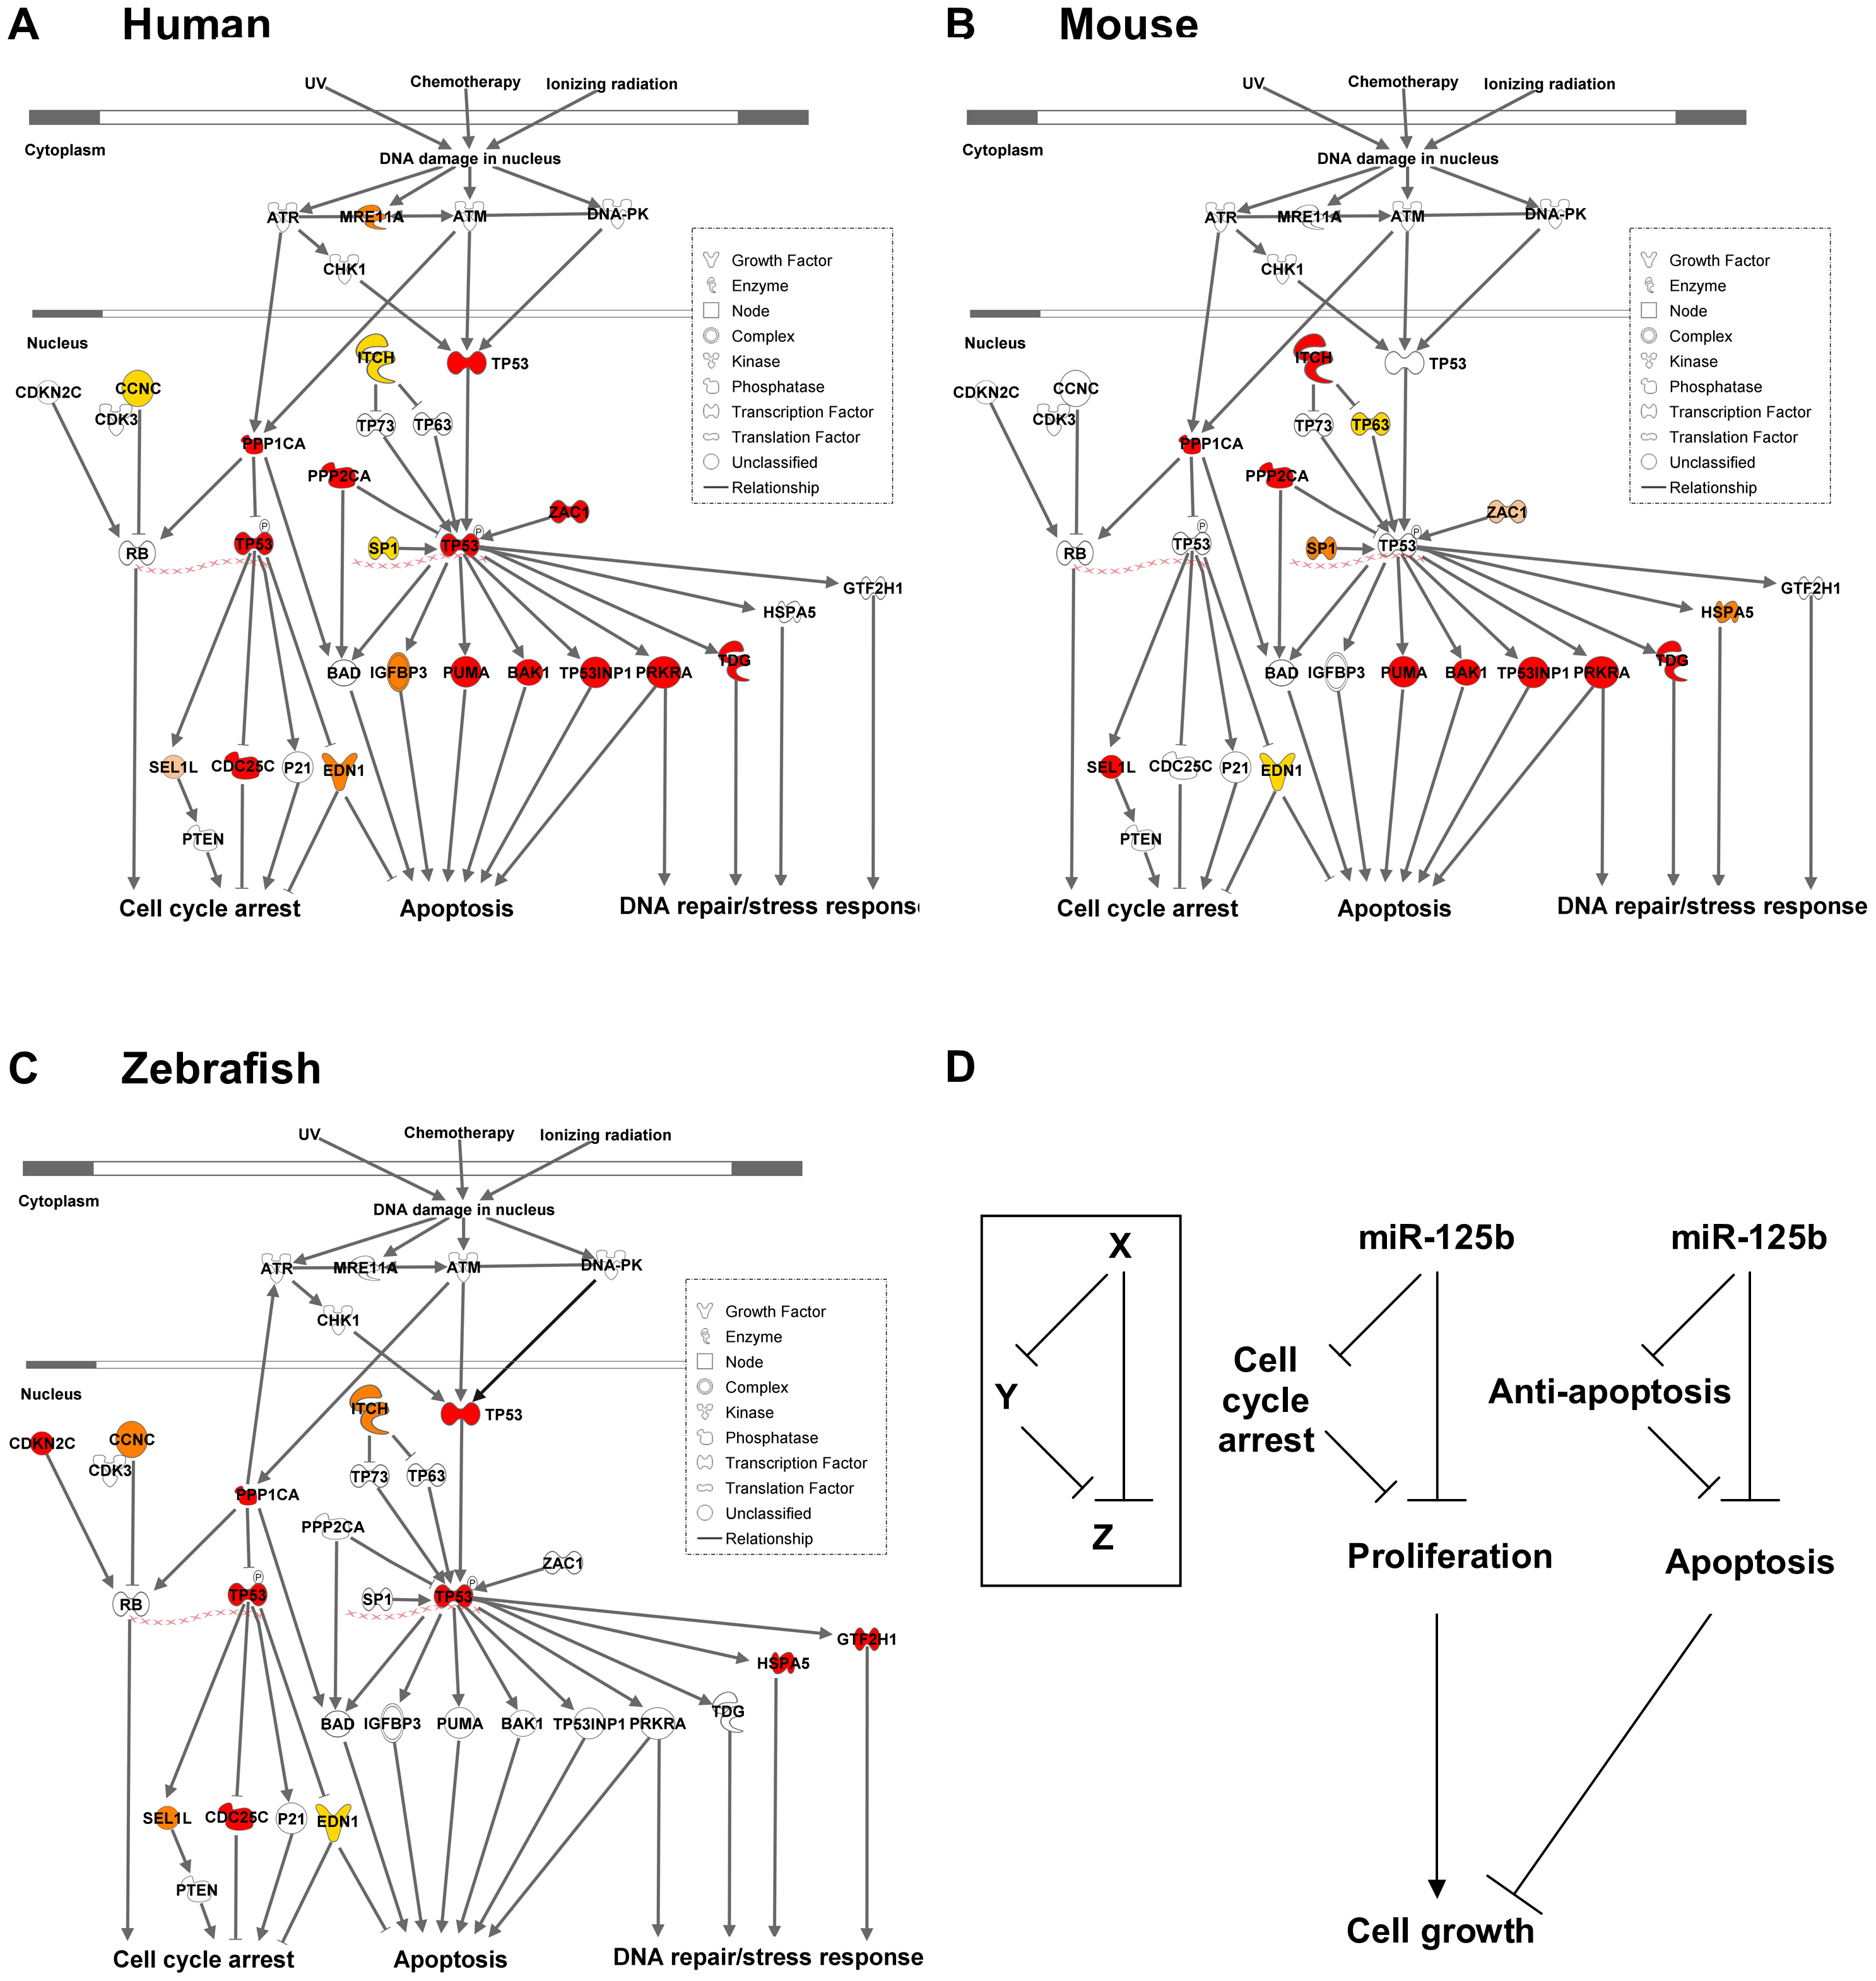 Models of miR-125b regulation of p53 networks in humans, mice, and zebrafish.